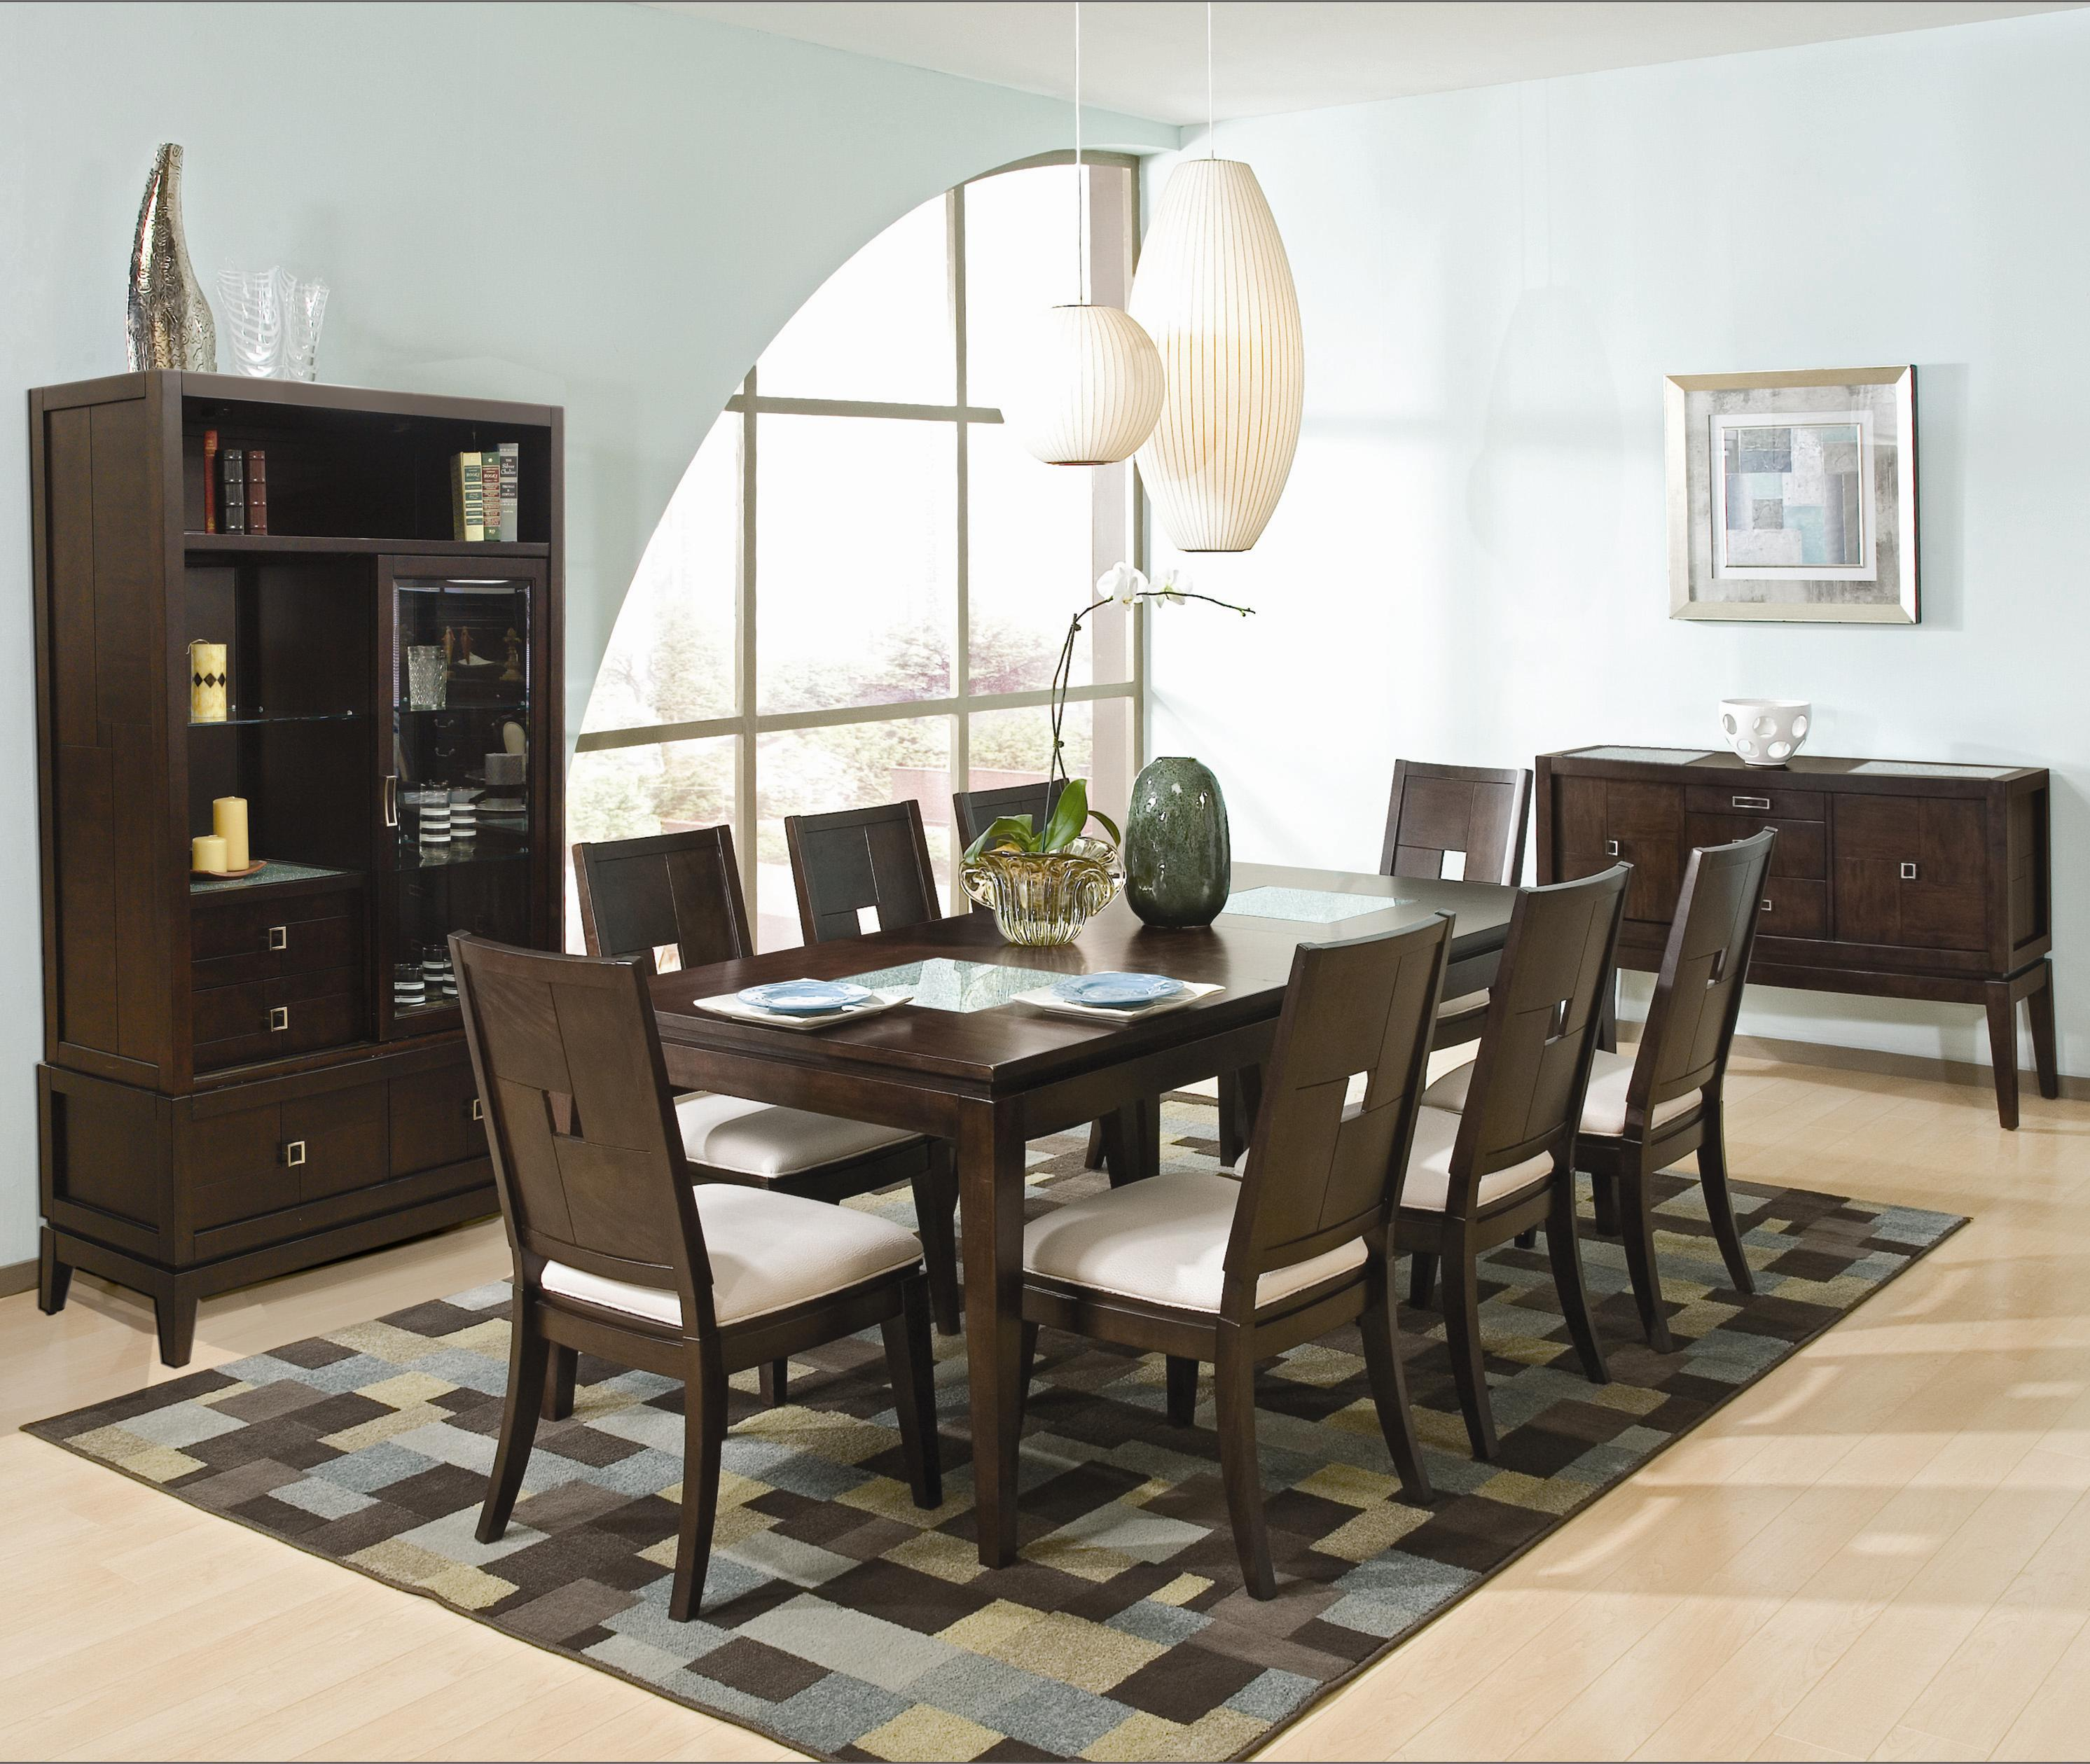 Cool wilcox furniture for home furniture with wilcox furniture corpus christi